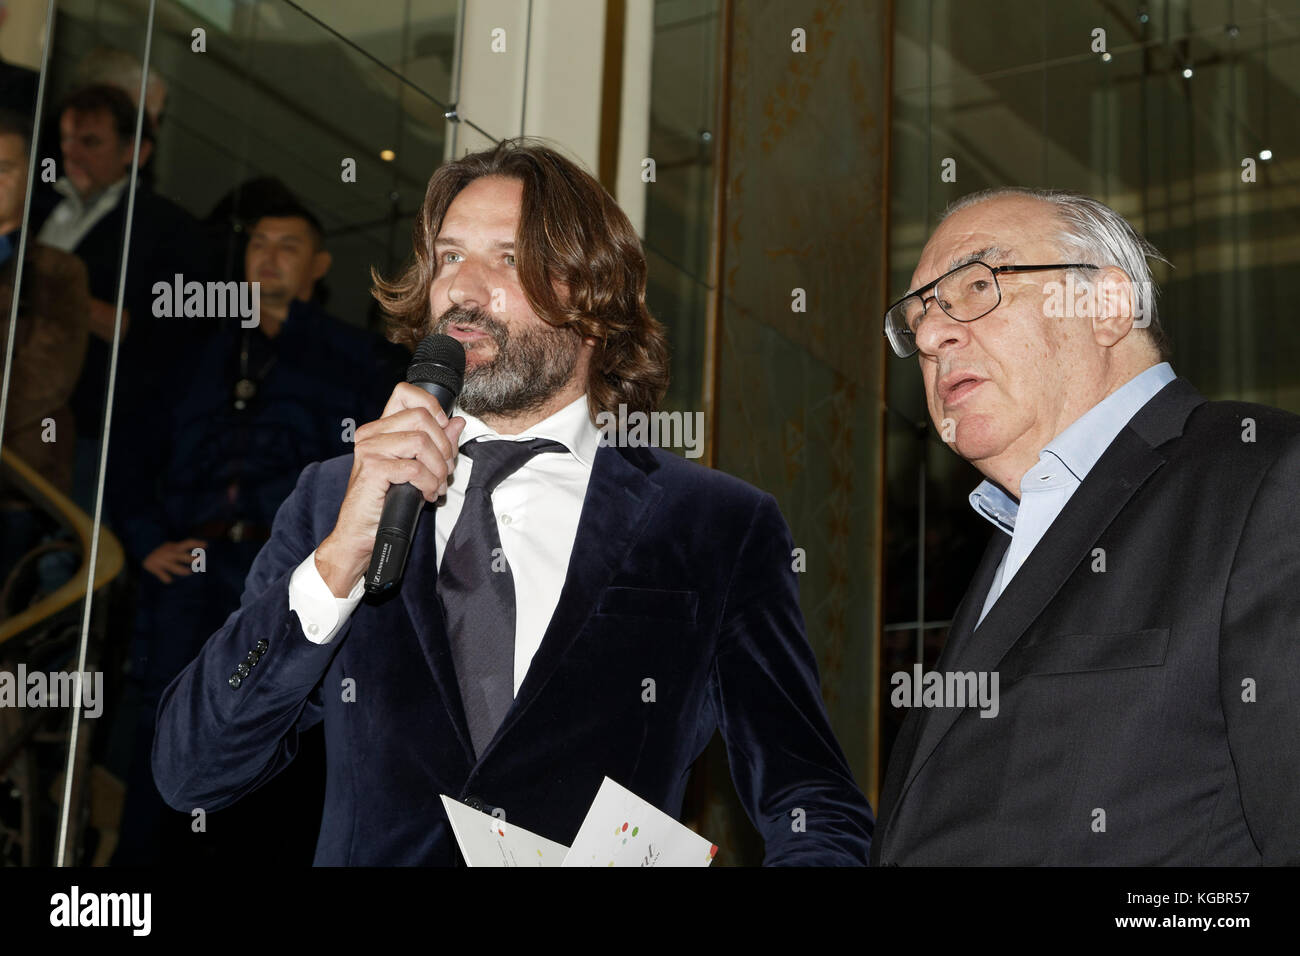 Paris, France. 6th Nov, 2017. Frédéric Beigbeder and Didier Decoin attend the Prix Goncourt at the Drouan - Stock Image